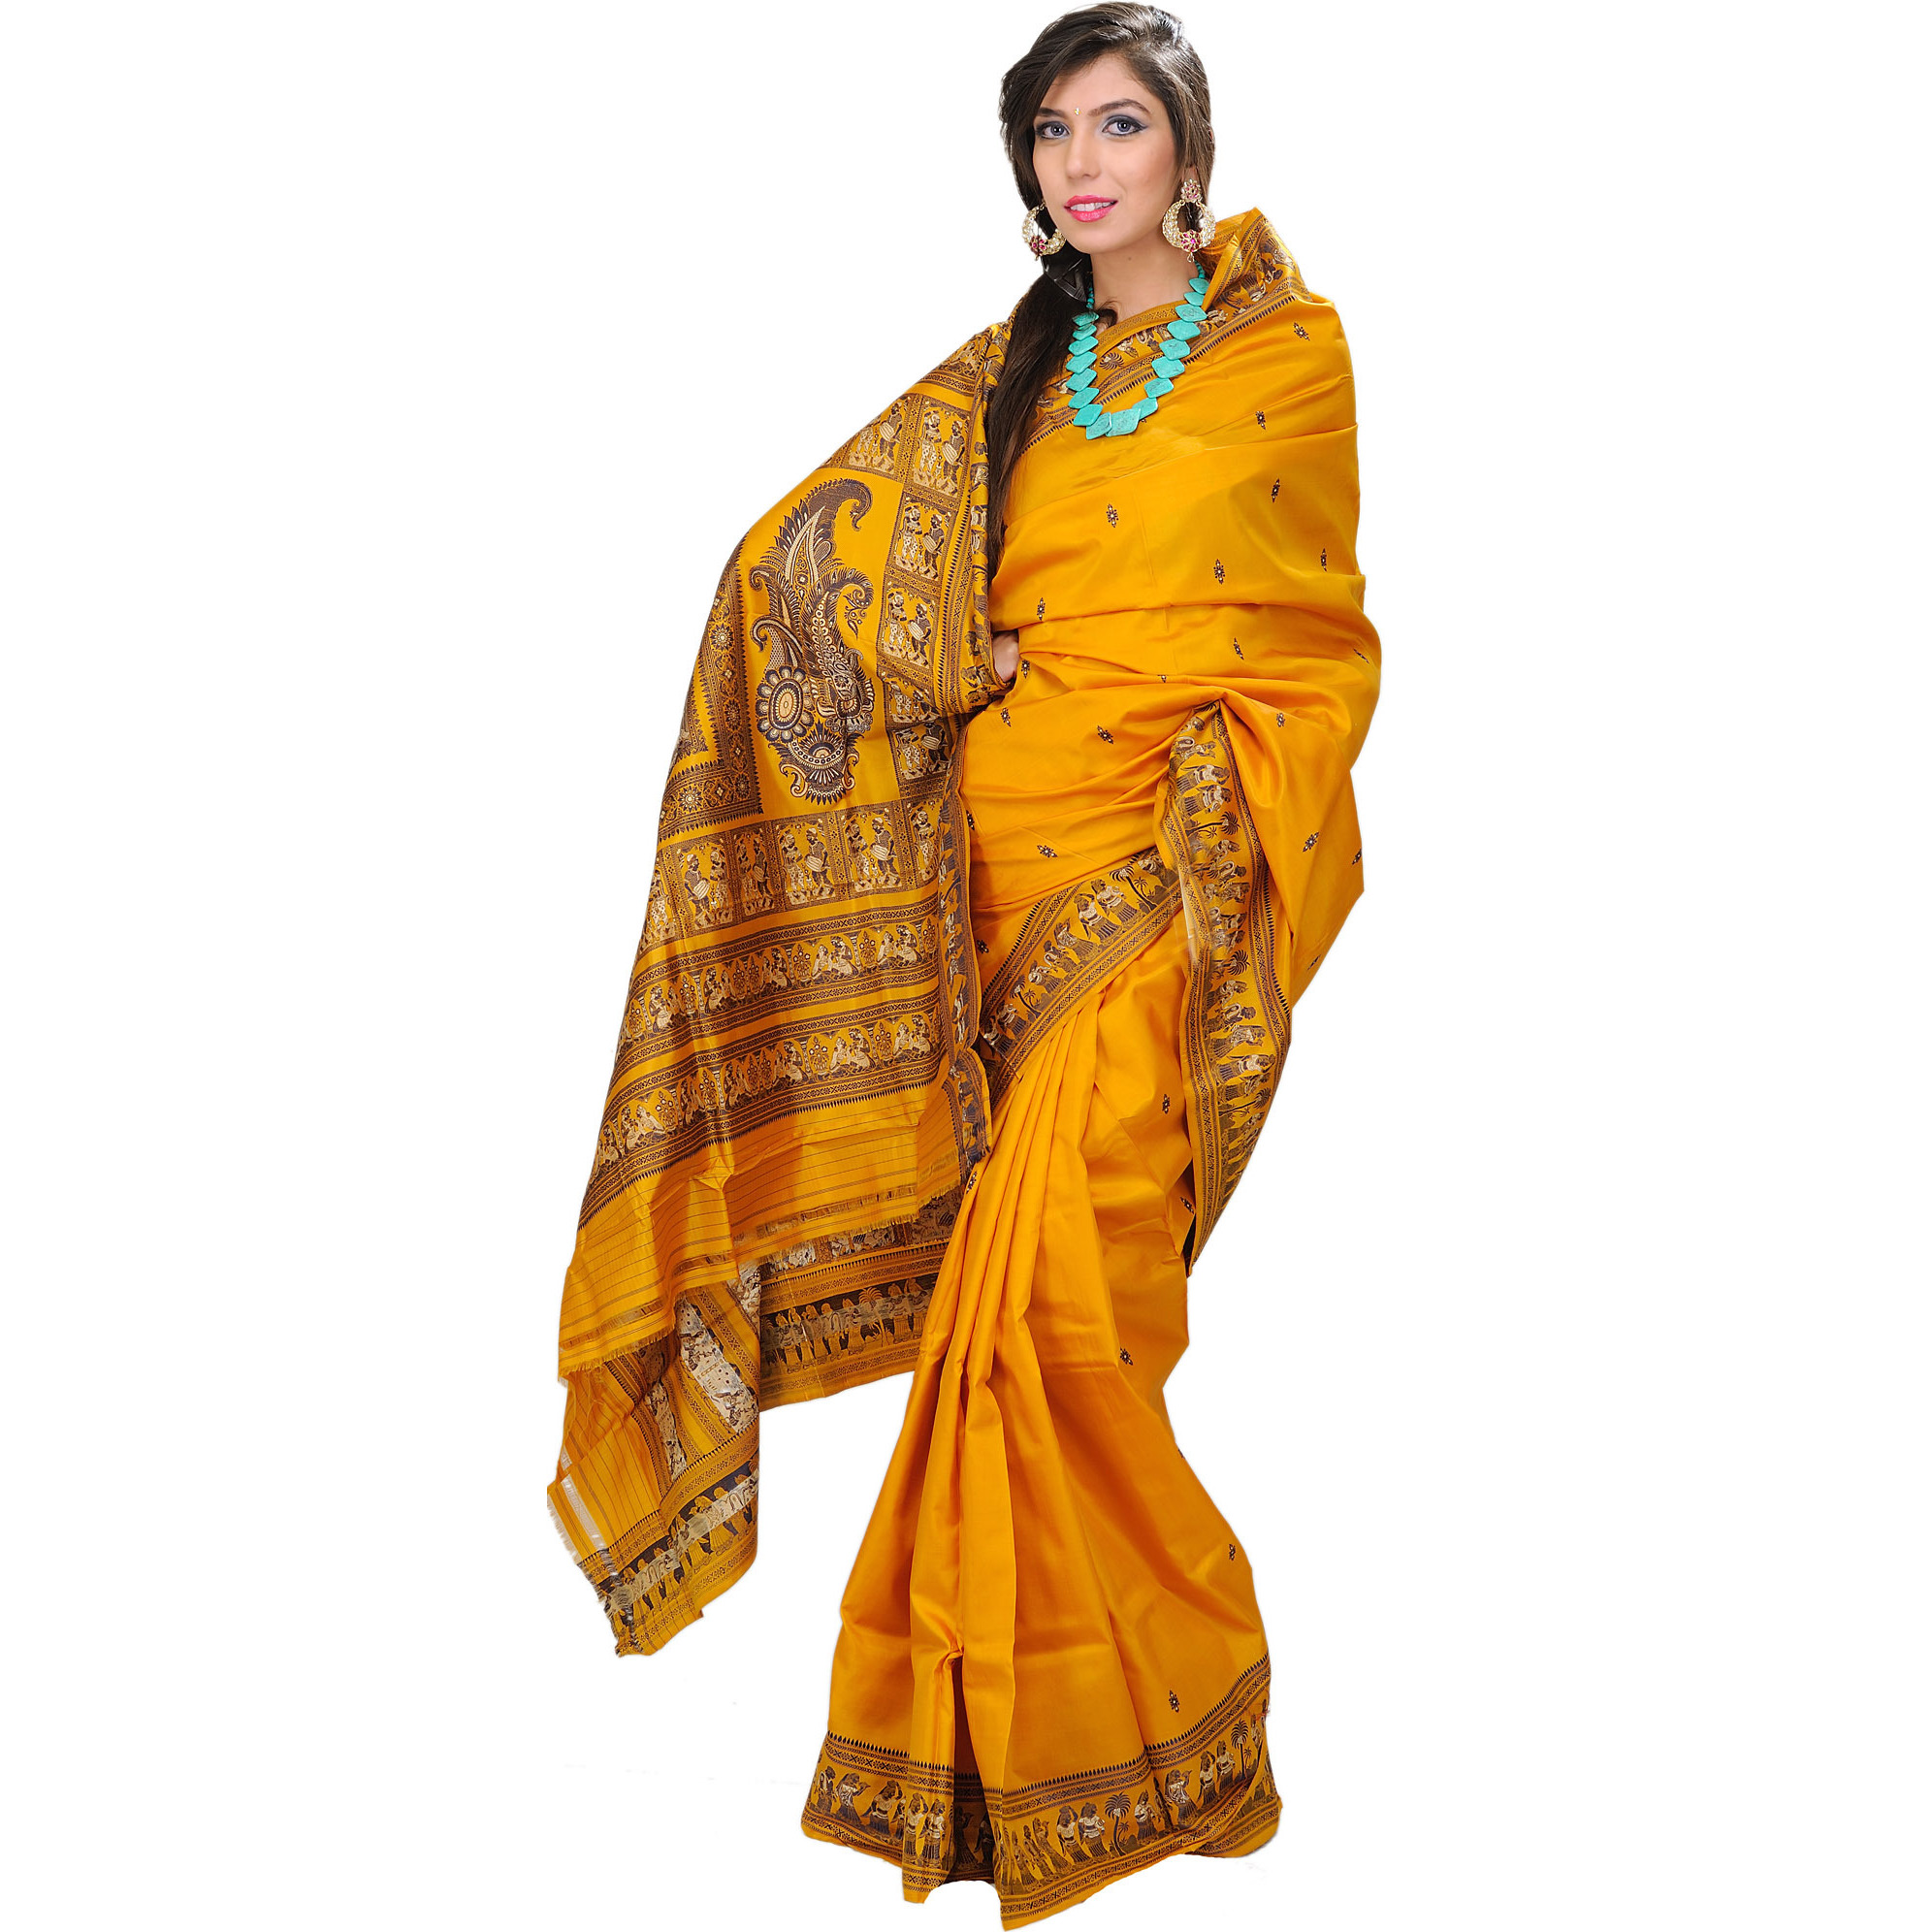 Sunflower Baluchari Hand-woven Sari Depicting Mythological Episodes